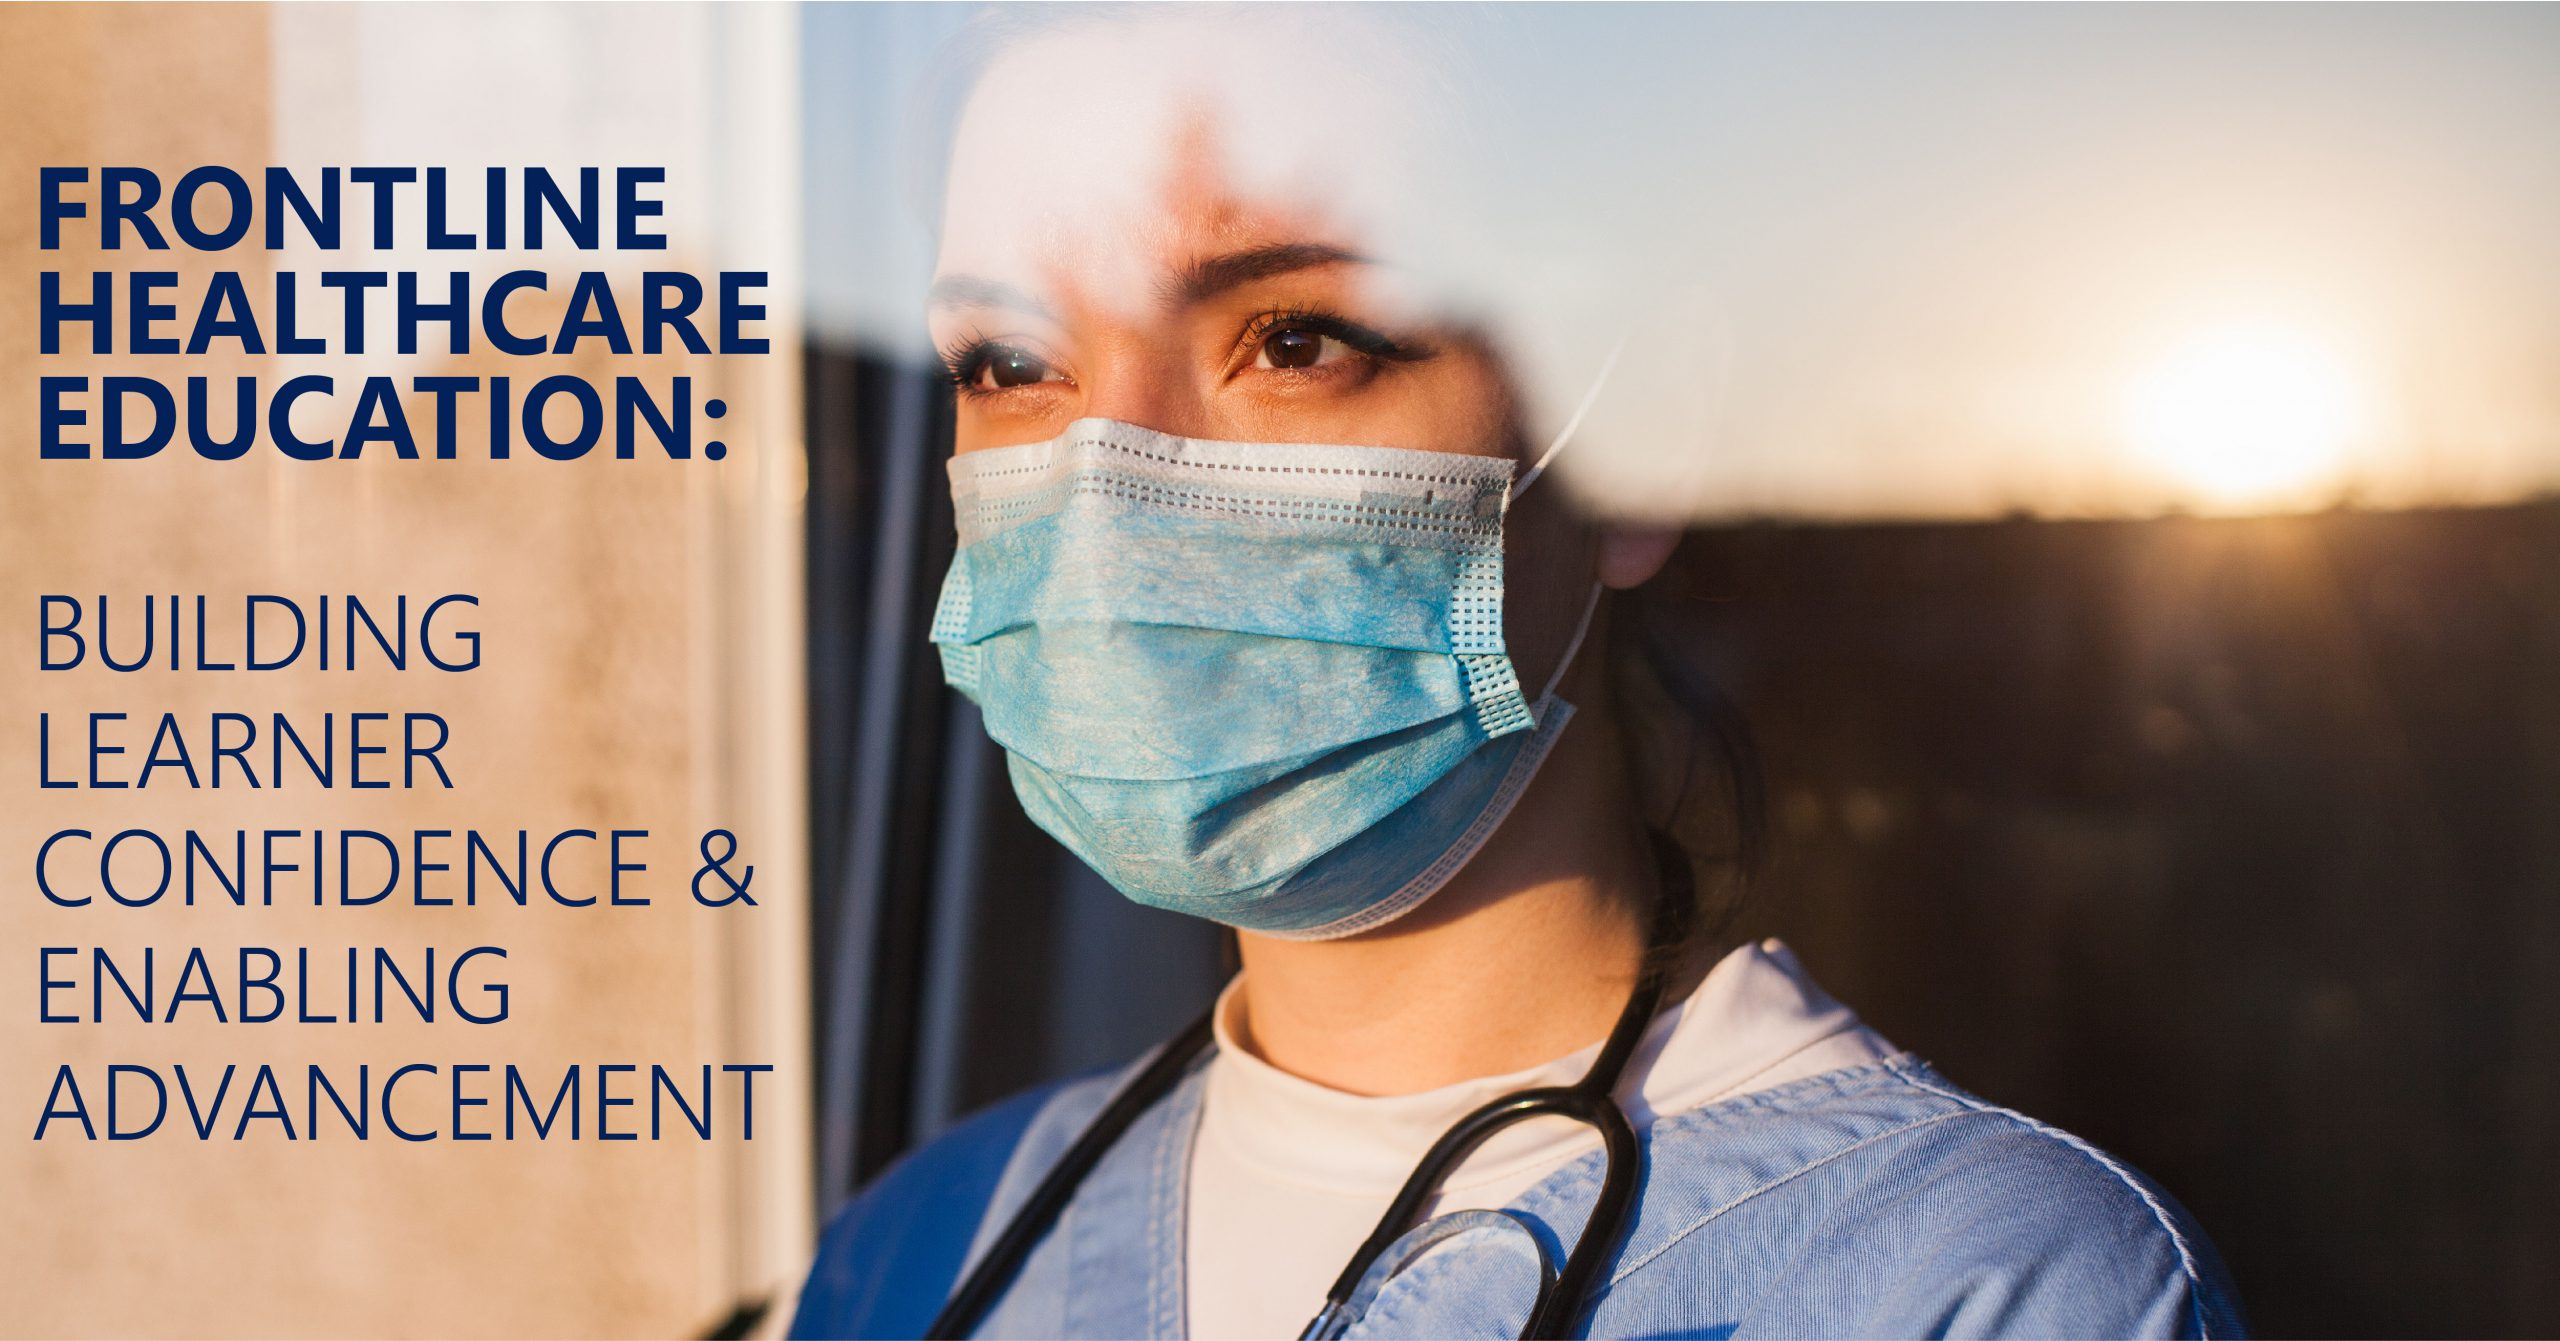 """Young woman healthcare worker wearing mask looks pensively out a window onto a bright landscape. Title of article """"Frontline Healthcare Education: Building Learner Confidence & Enabling Advancement"""" is superimposed on the left side of the image."""